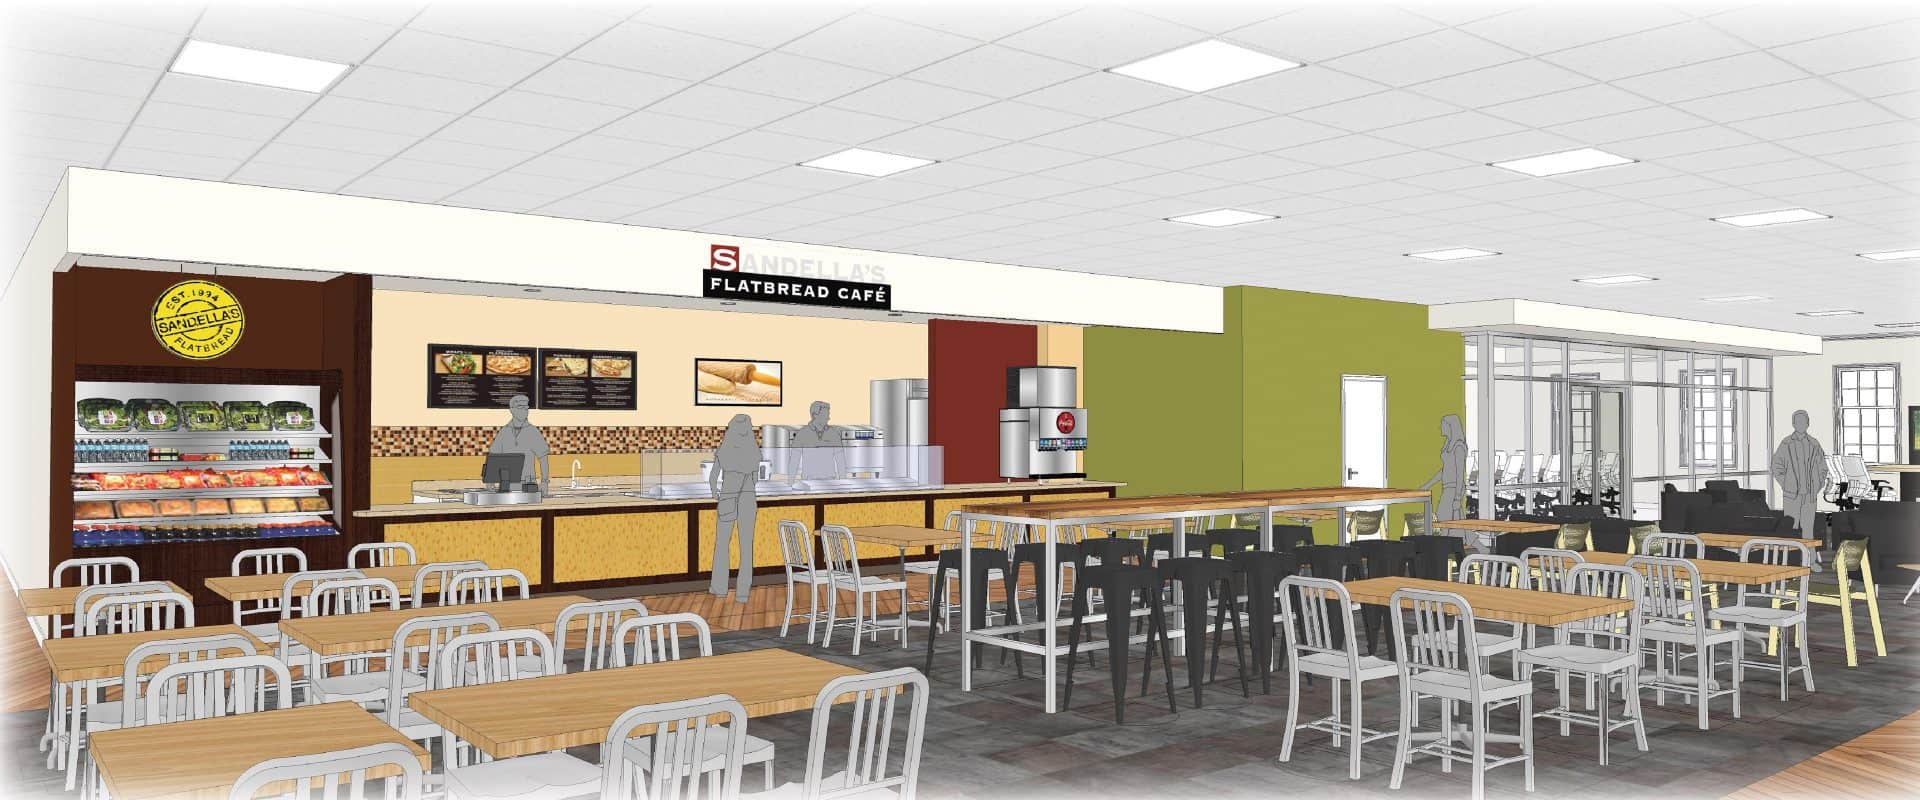 Rendering of the new Sandellas restaurant coming to the 2nd floor of the Belk building on WPU campus.